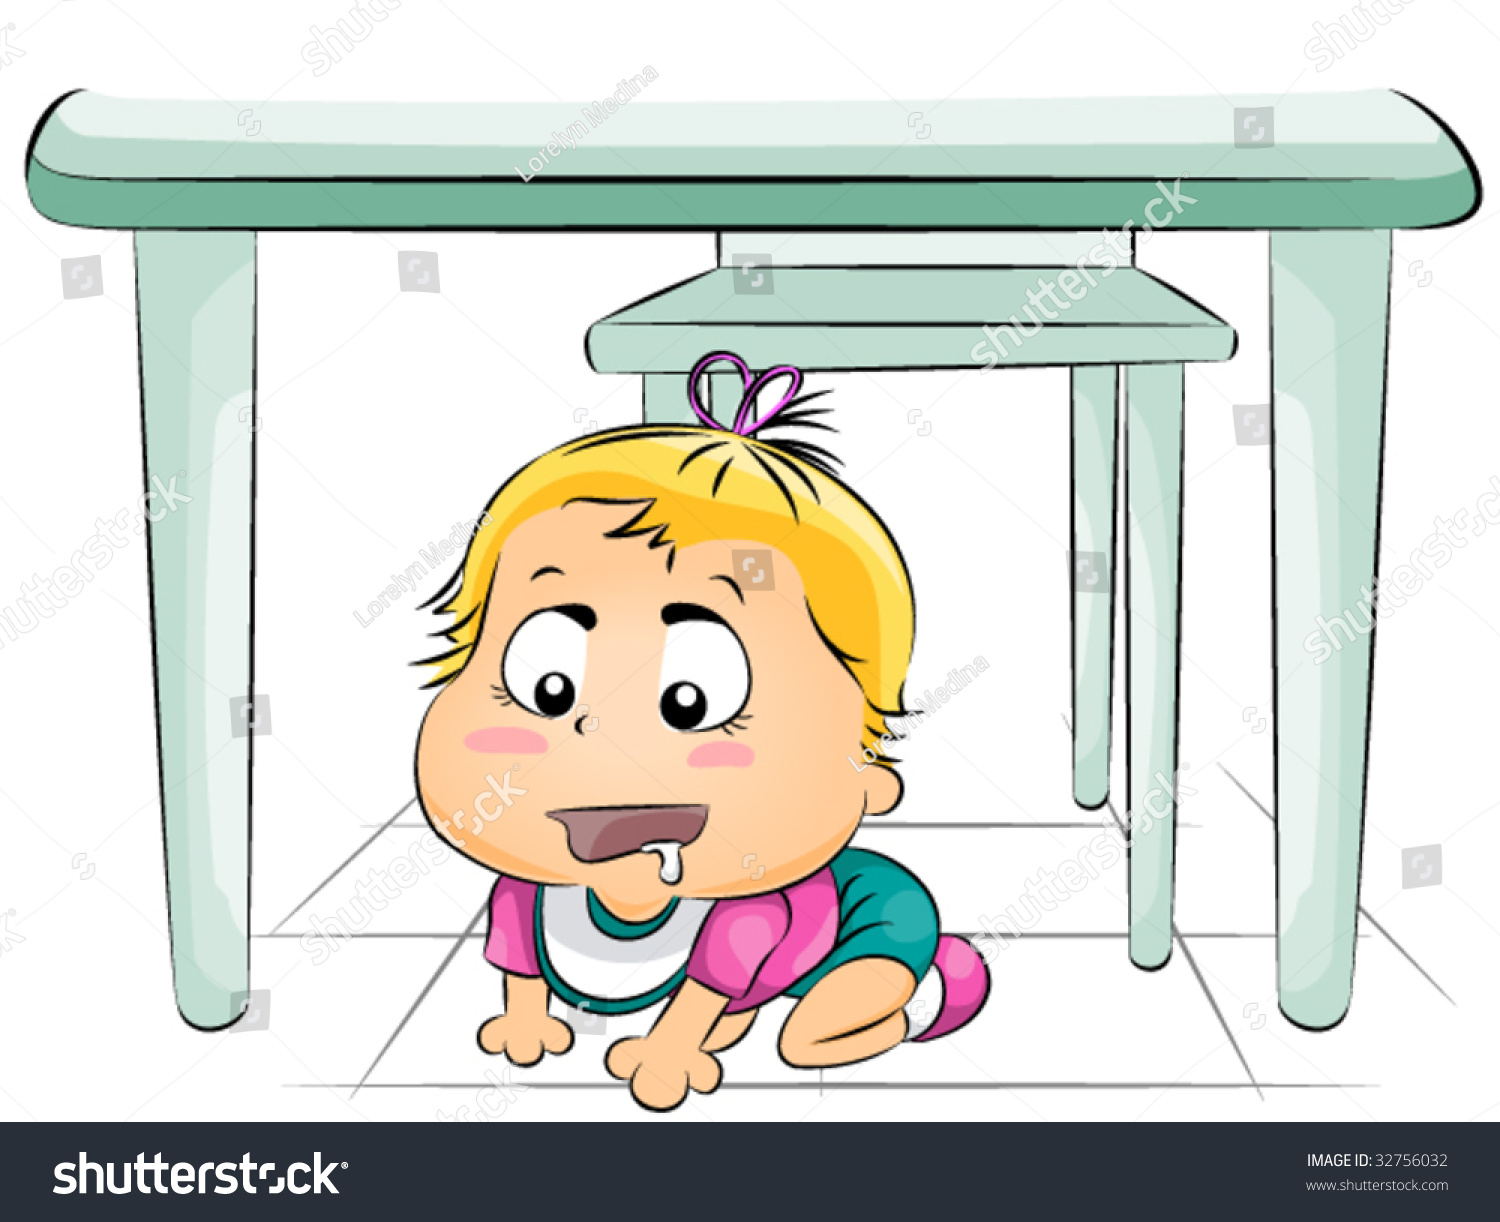 Http Shutterstock Com Pic 32756032 Stock Photo Hungry Baby Under The Table Vector Html